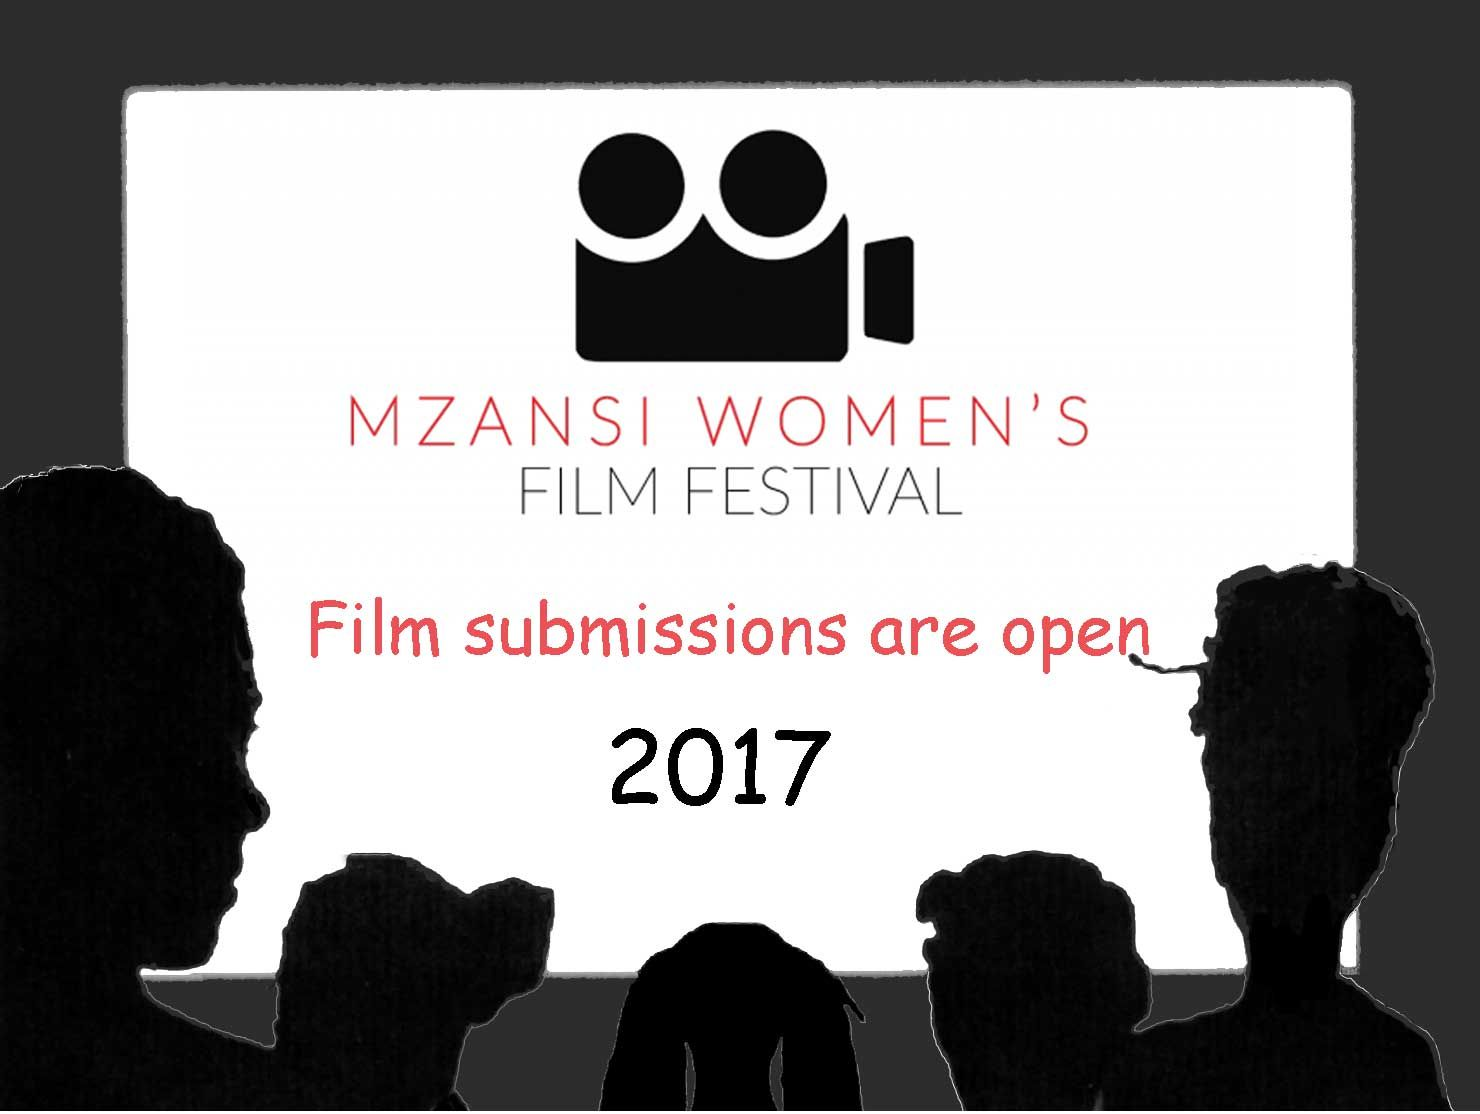 Quot A Blog About African Women In Cinema Filmmakers Film Criticism Feminist Filmmaking Producers Actresses Film Festivals Quot Film Festival